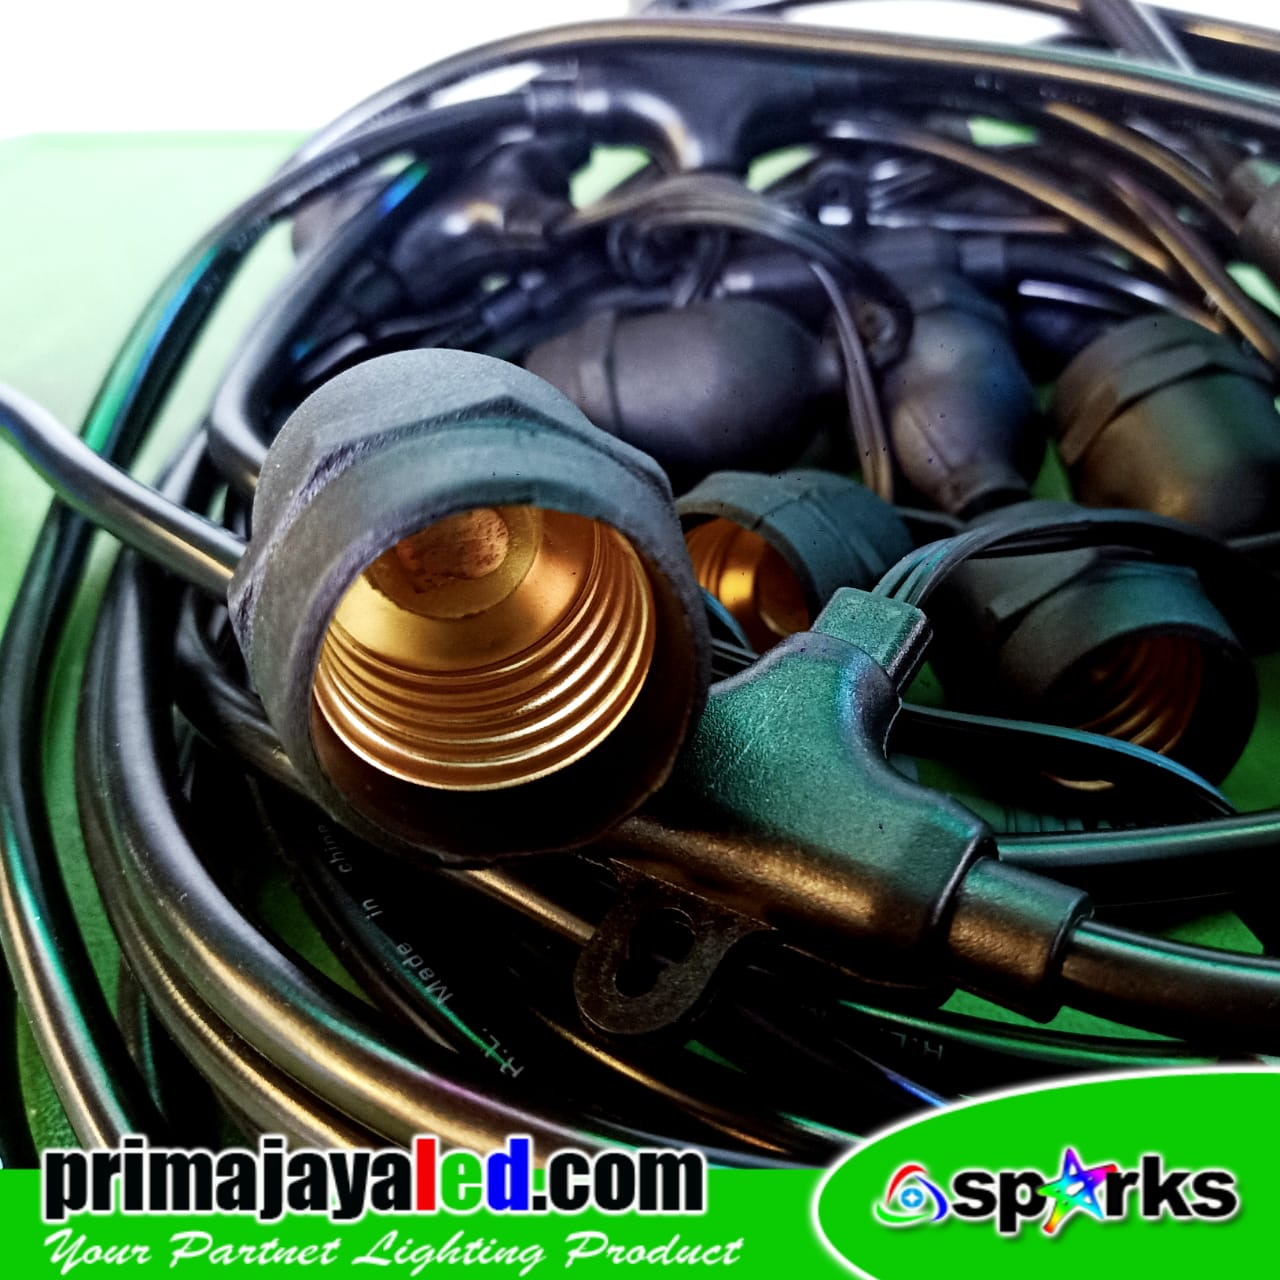 Kabel String Fitting Gantung 10 Meter